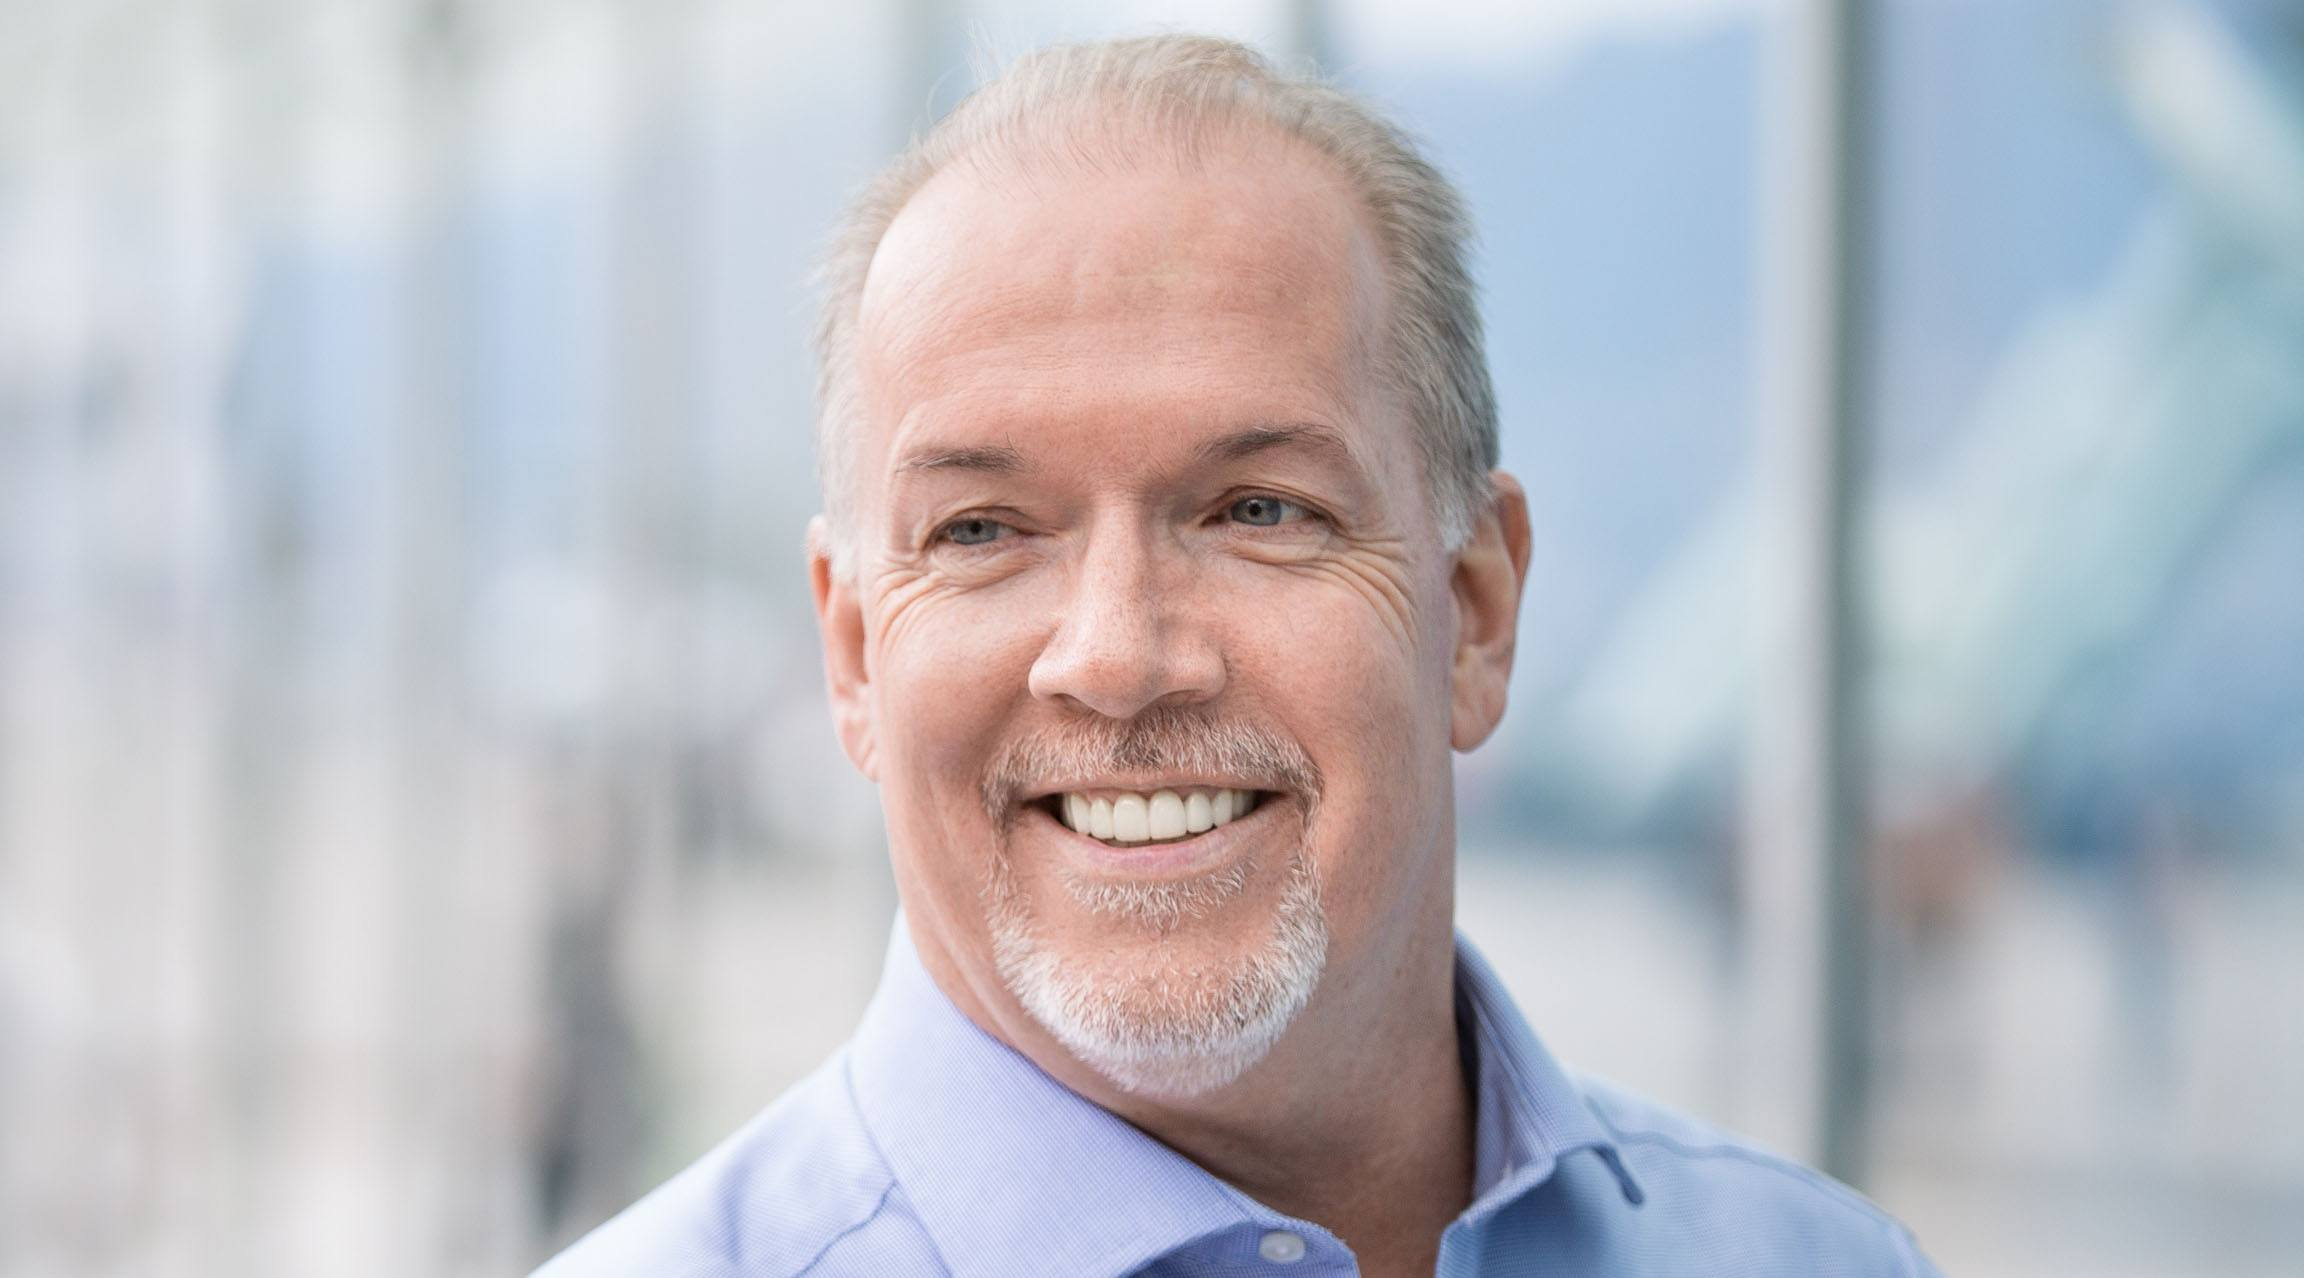 New BC Premier John Horgan to be sworn in on July 18